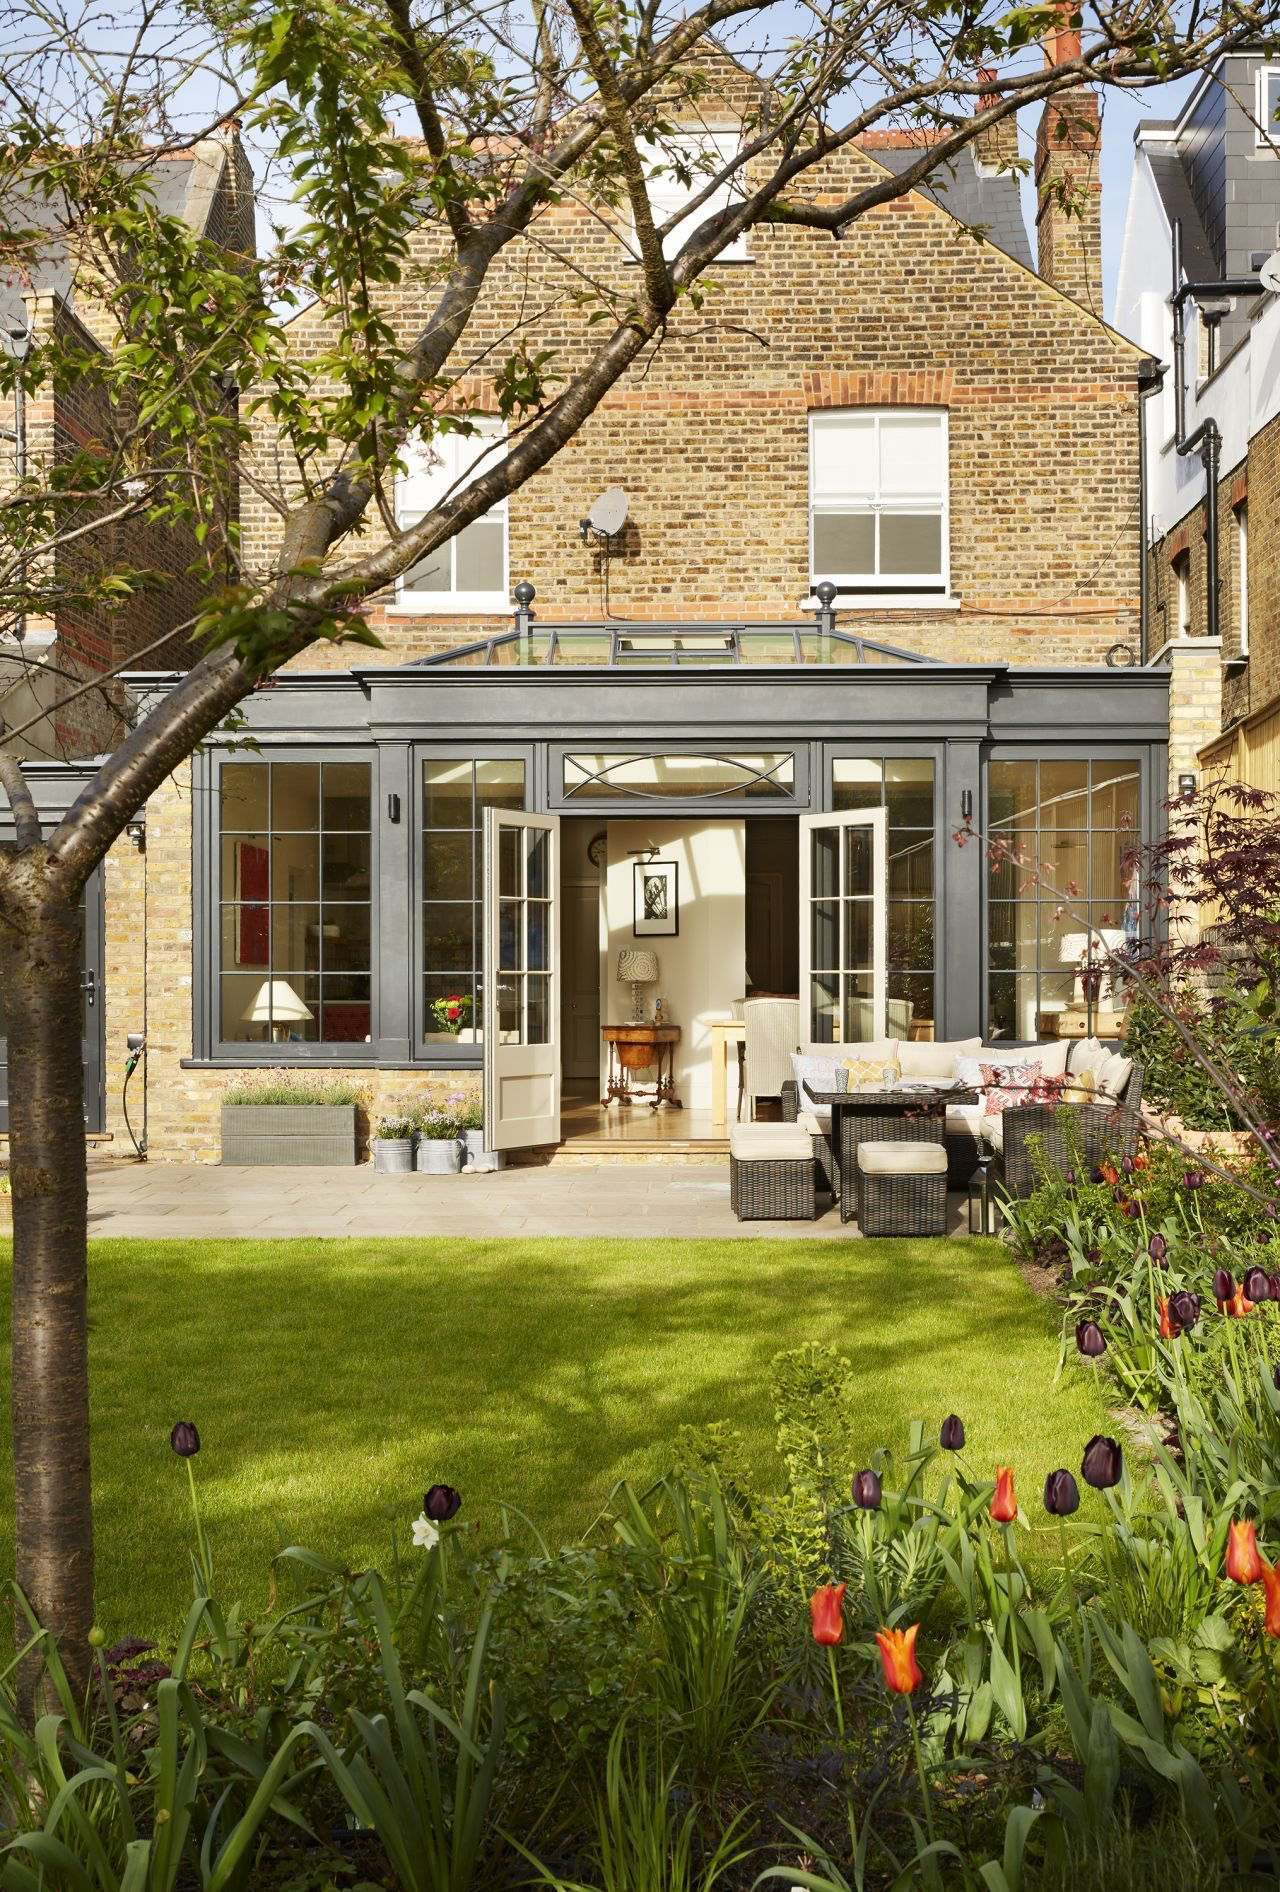 Conservatory Room Addition In The Uk 1040x1485 In 2020: Garden Room Extensions, Room Extensions, Kitchen Orangery